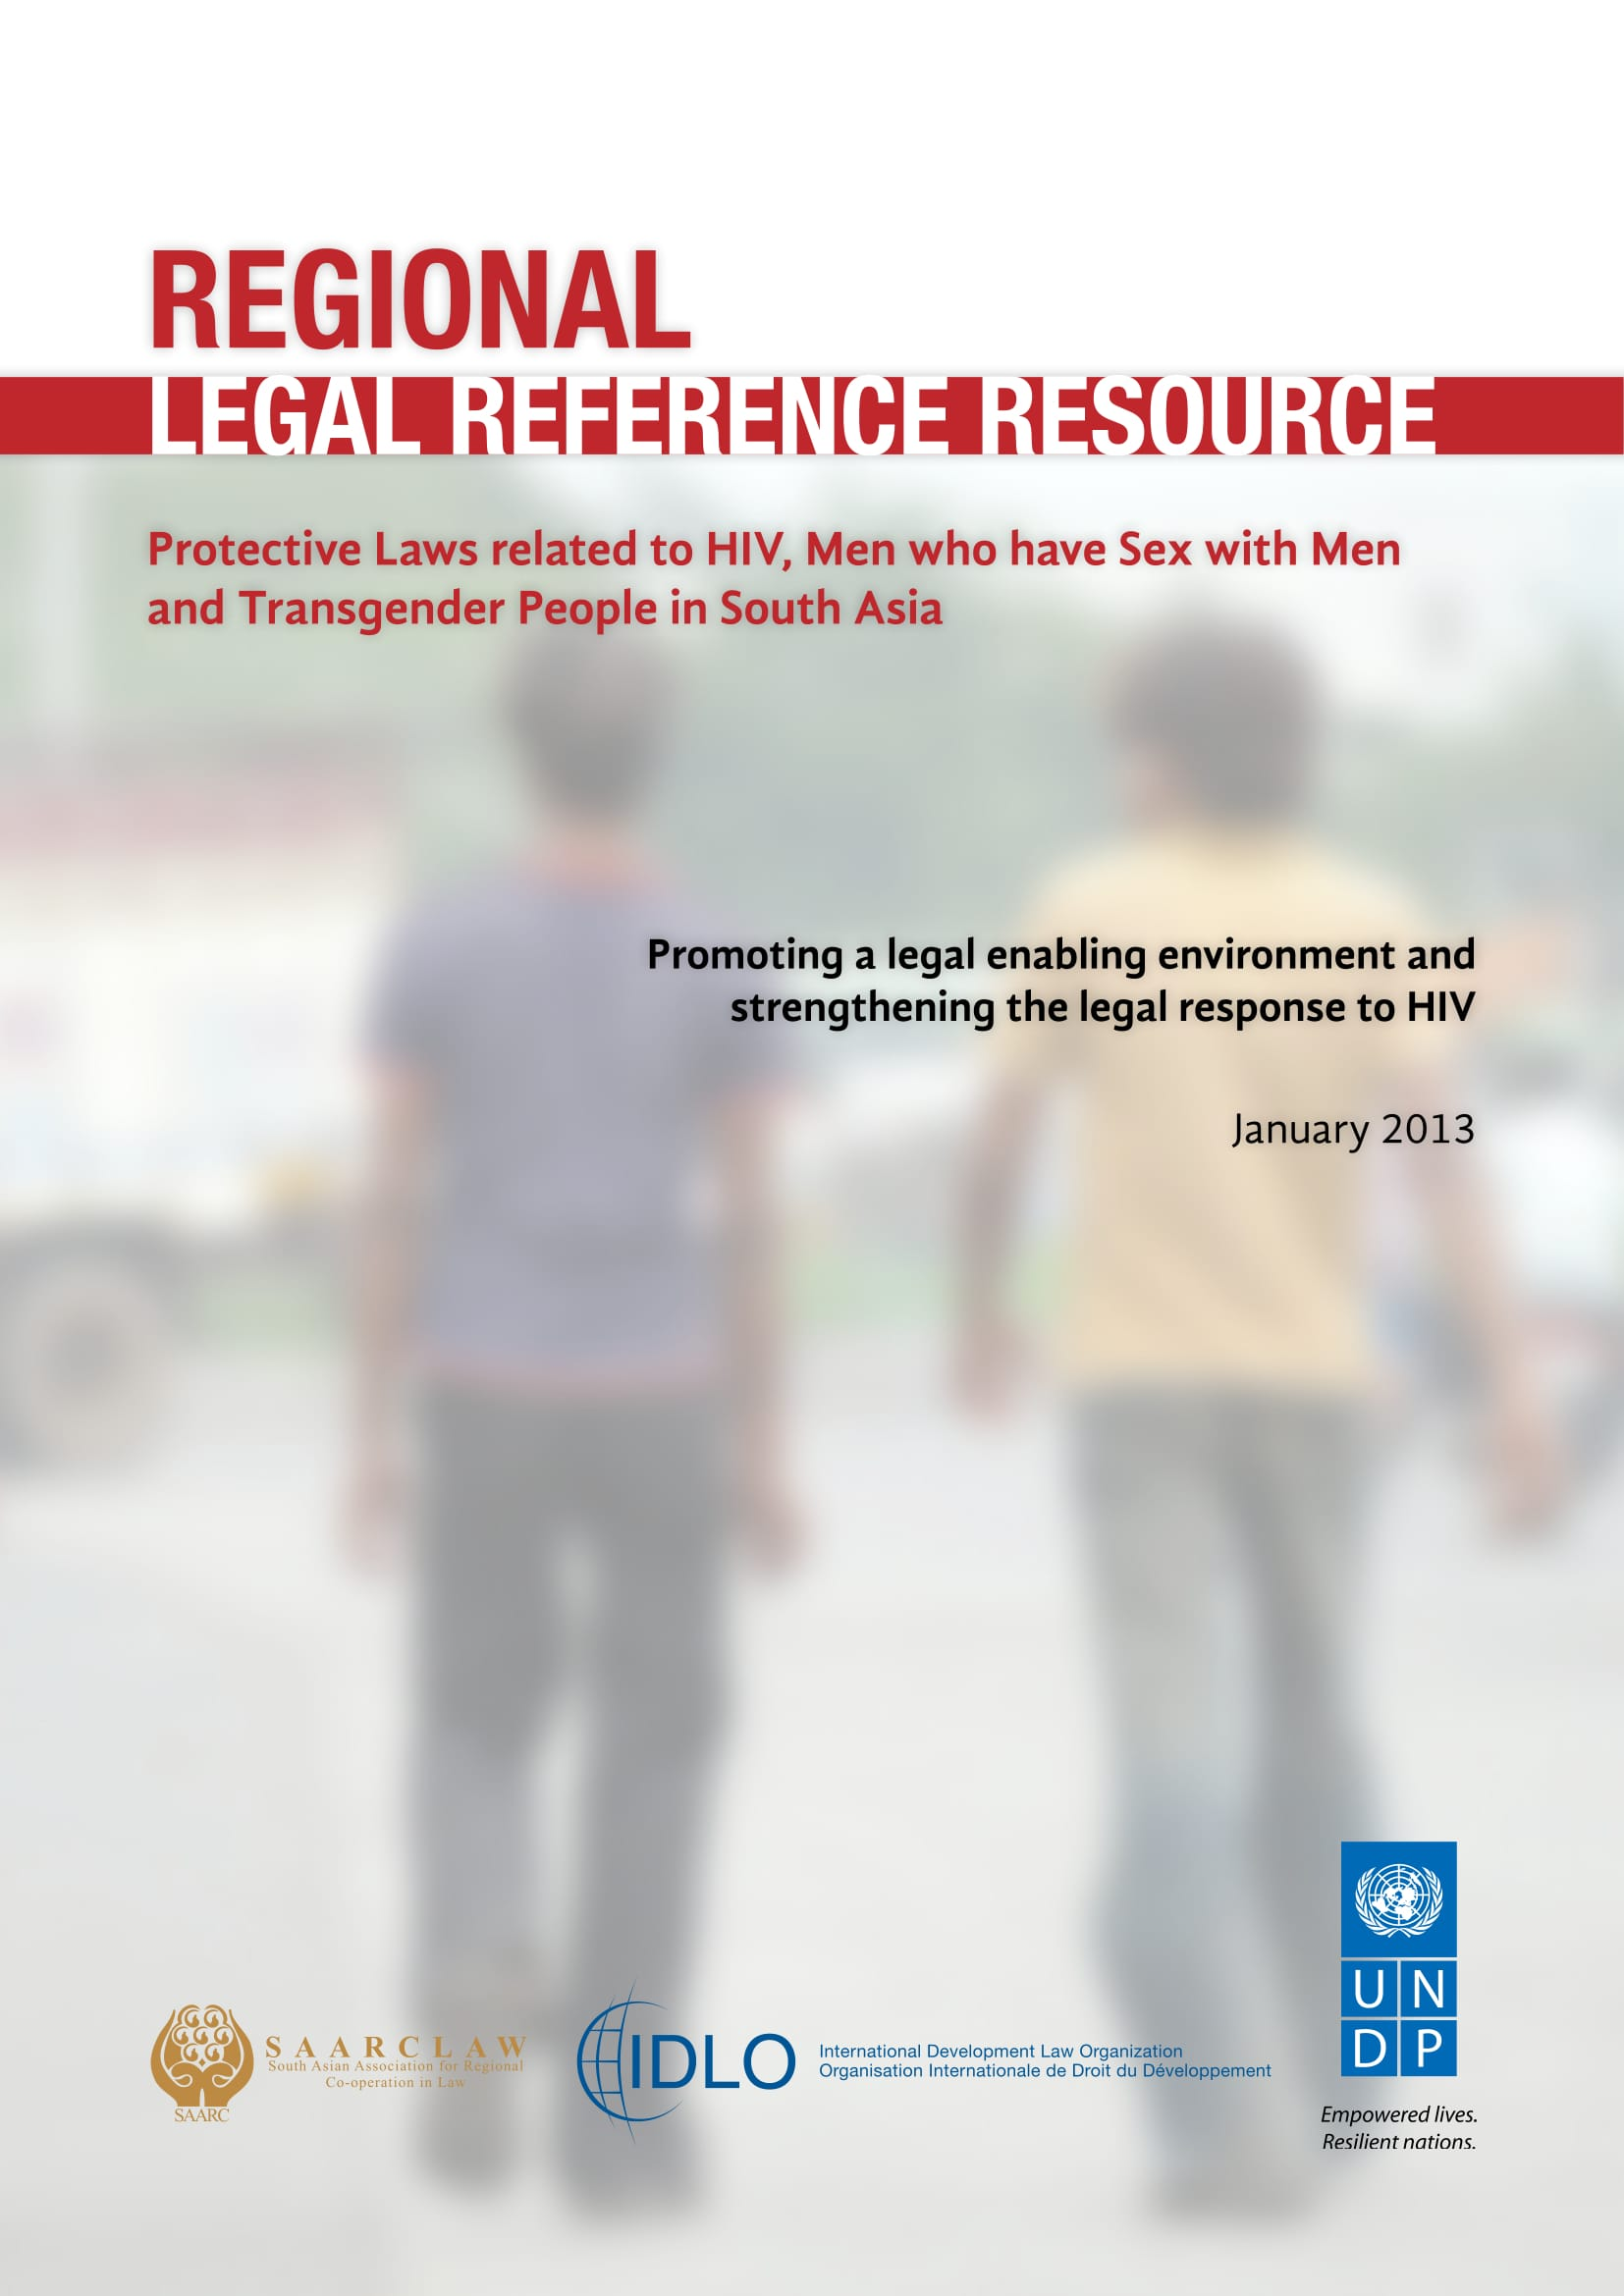 Regional Legal Reference Resource: Protective Laws Related to HIV, Men who have Sex with Men and Transgender People in South Asia